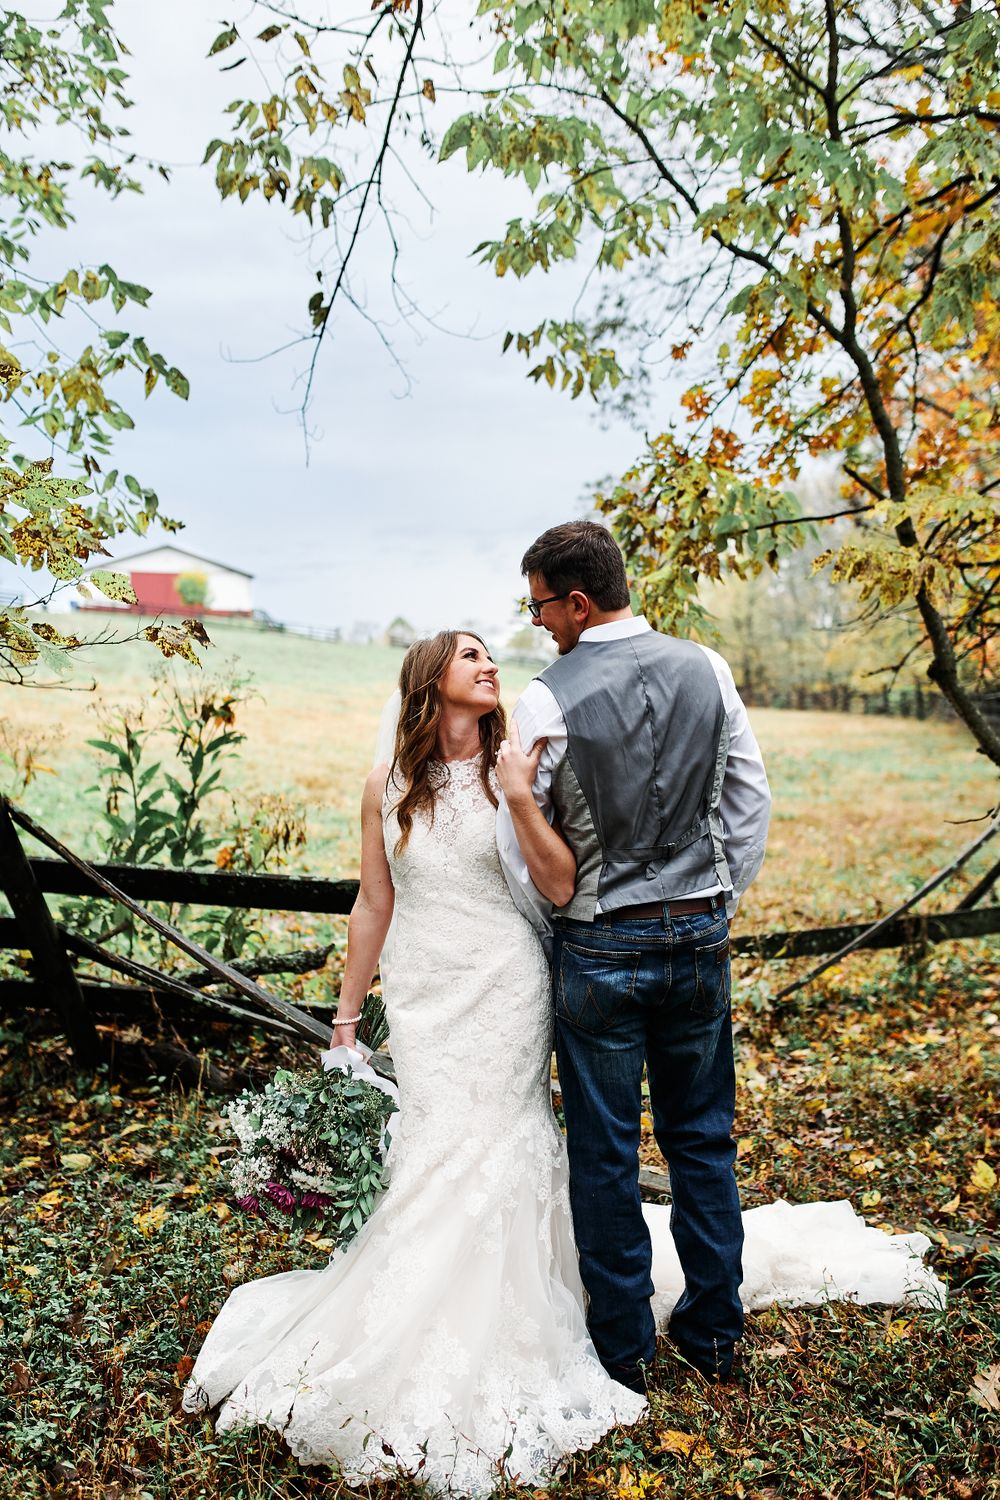 Outdoor portraits from a barn wedding located in Kentucky Shutter Photography & Film